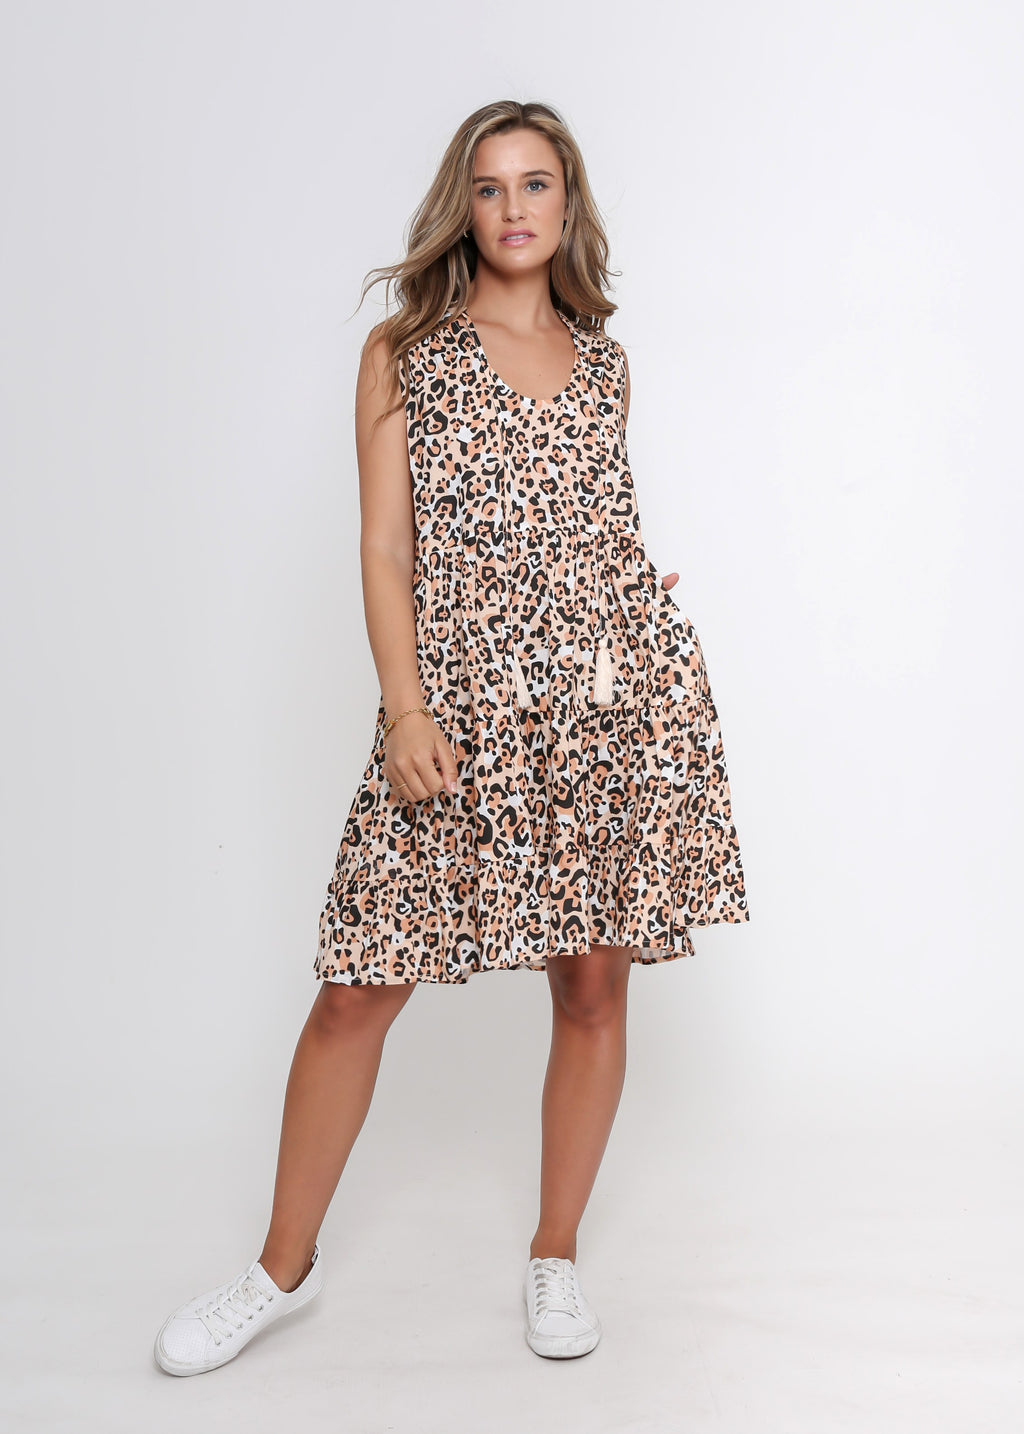 NEW - HAZEL DRESS - SUMMER LEOPARD